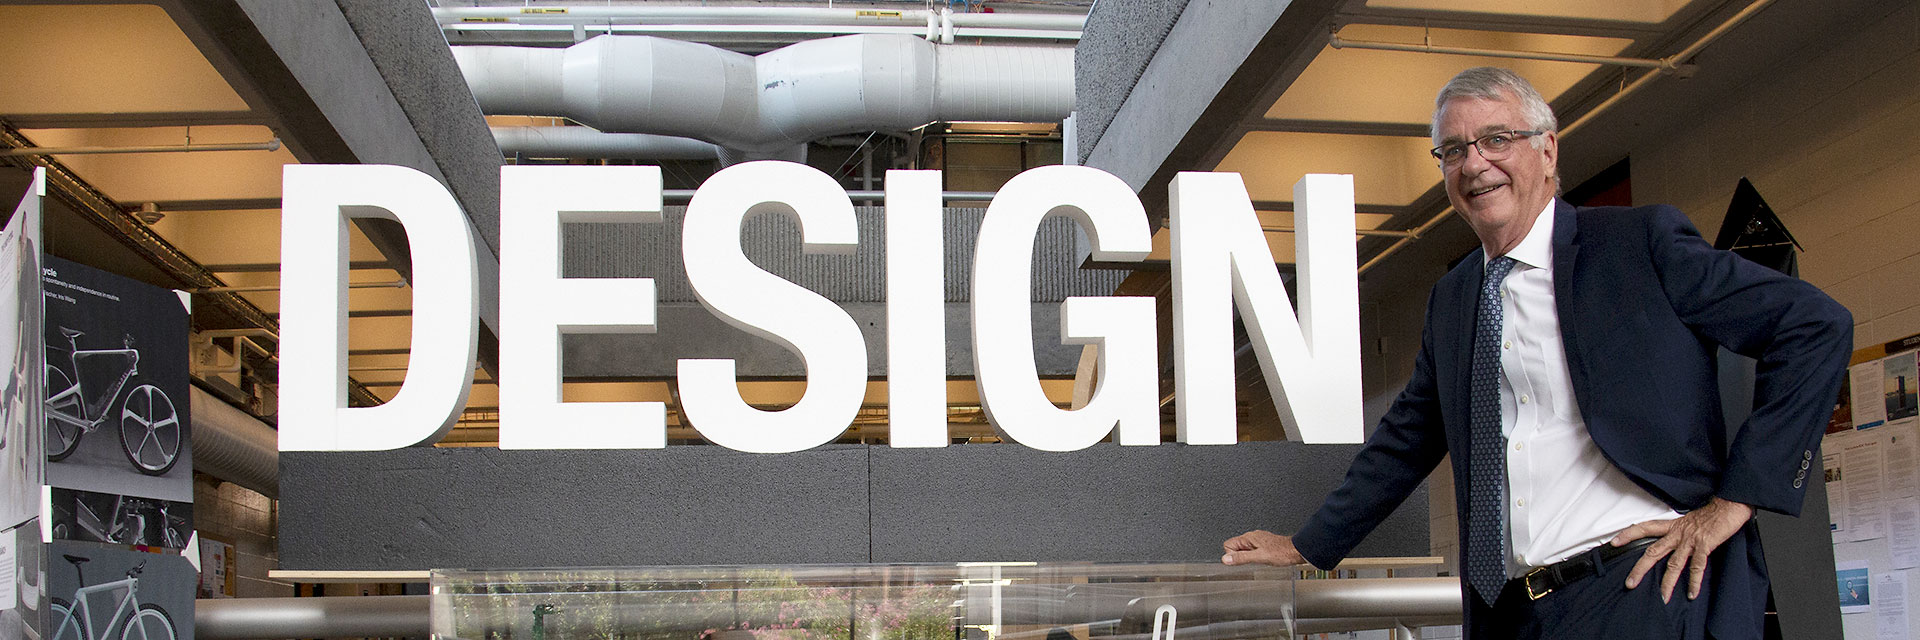 College of Design dean Steven French stands next to large foam letters that spell the word DESIGN.